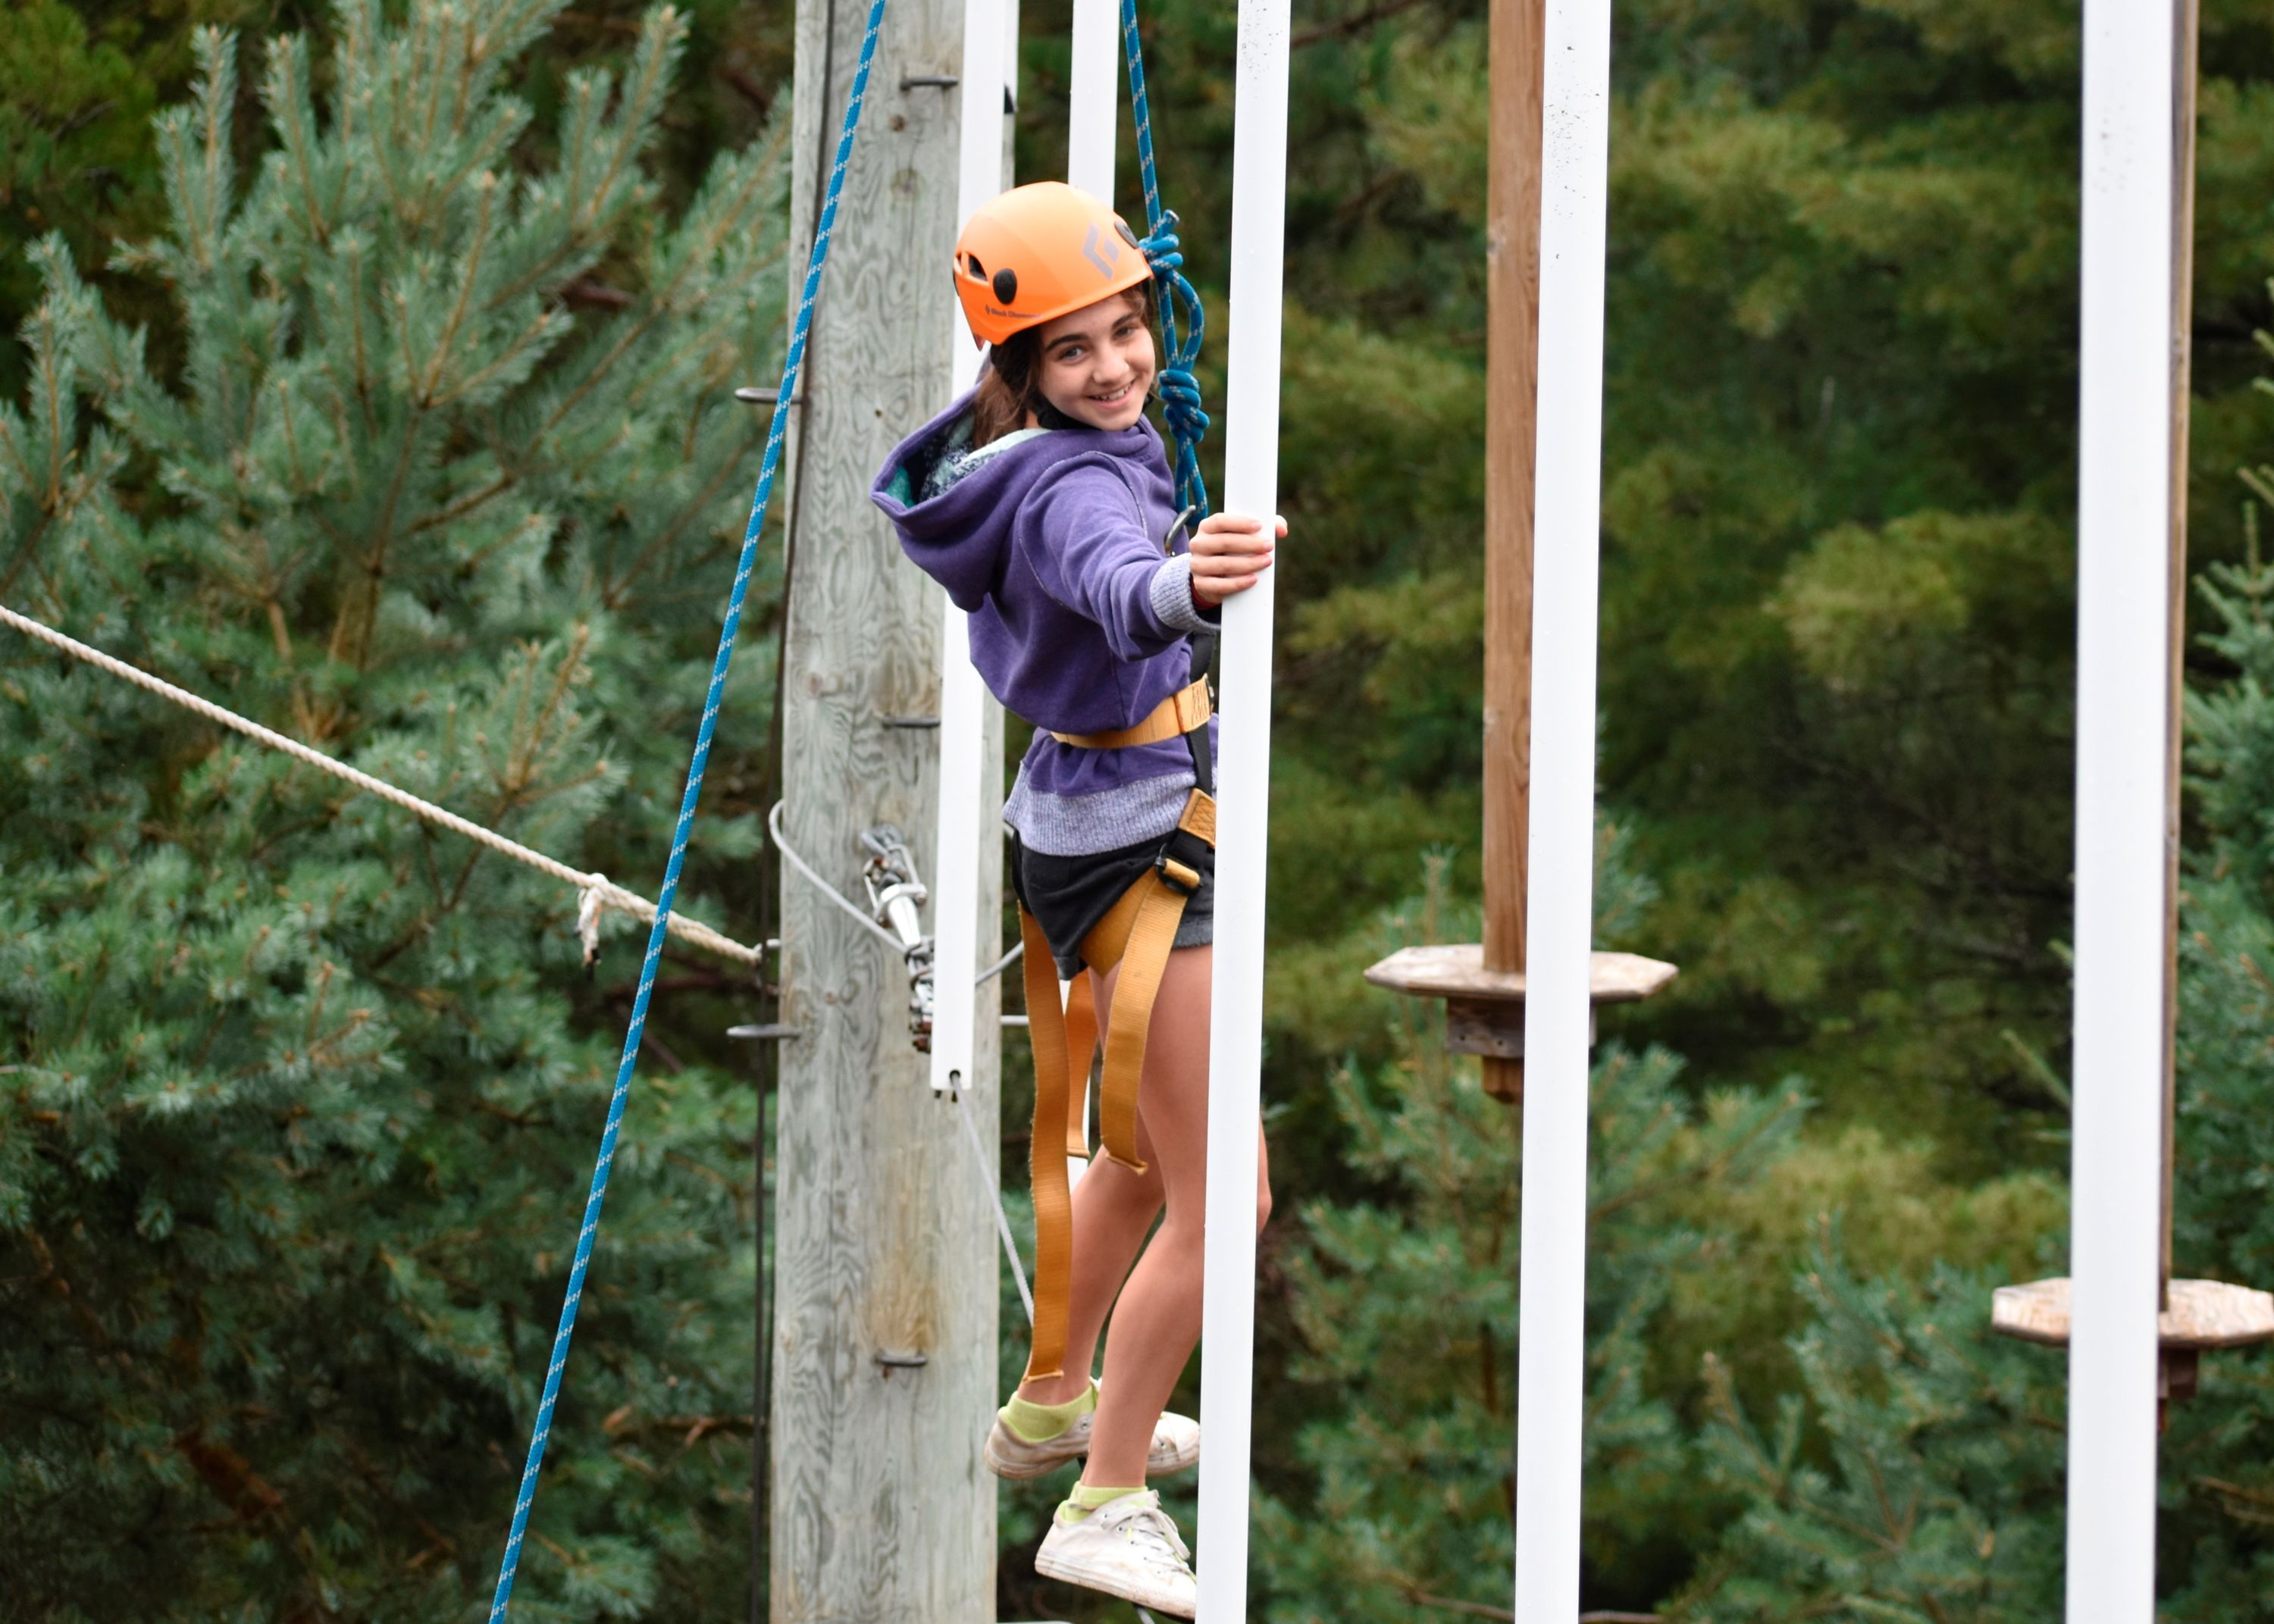 camper on high ropes element